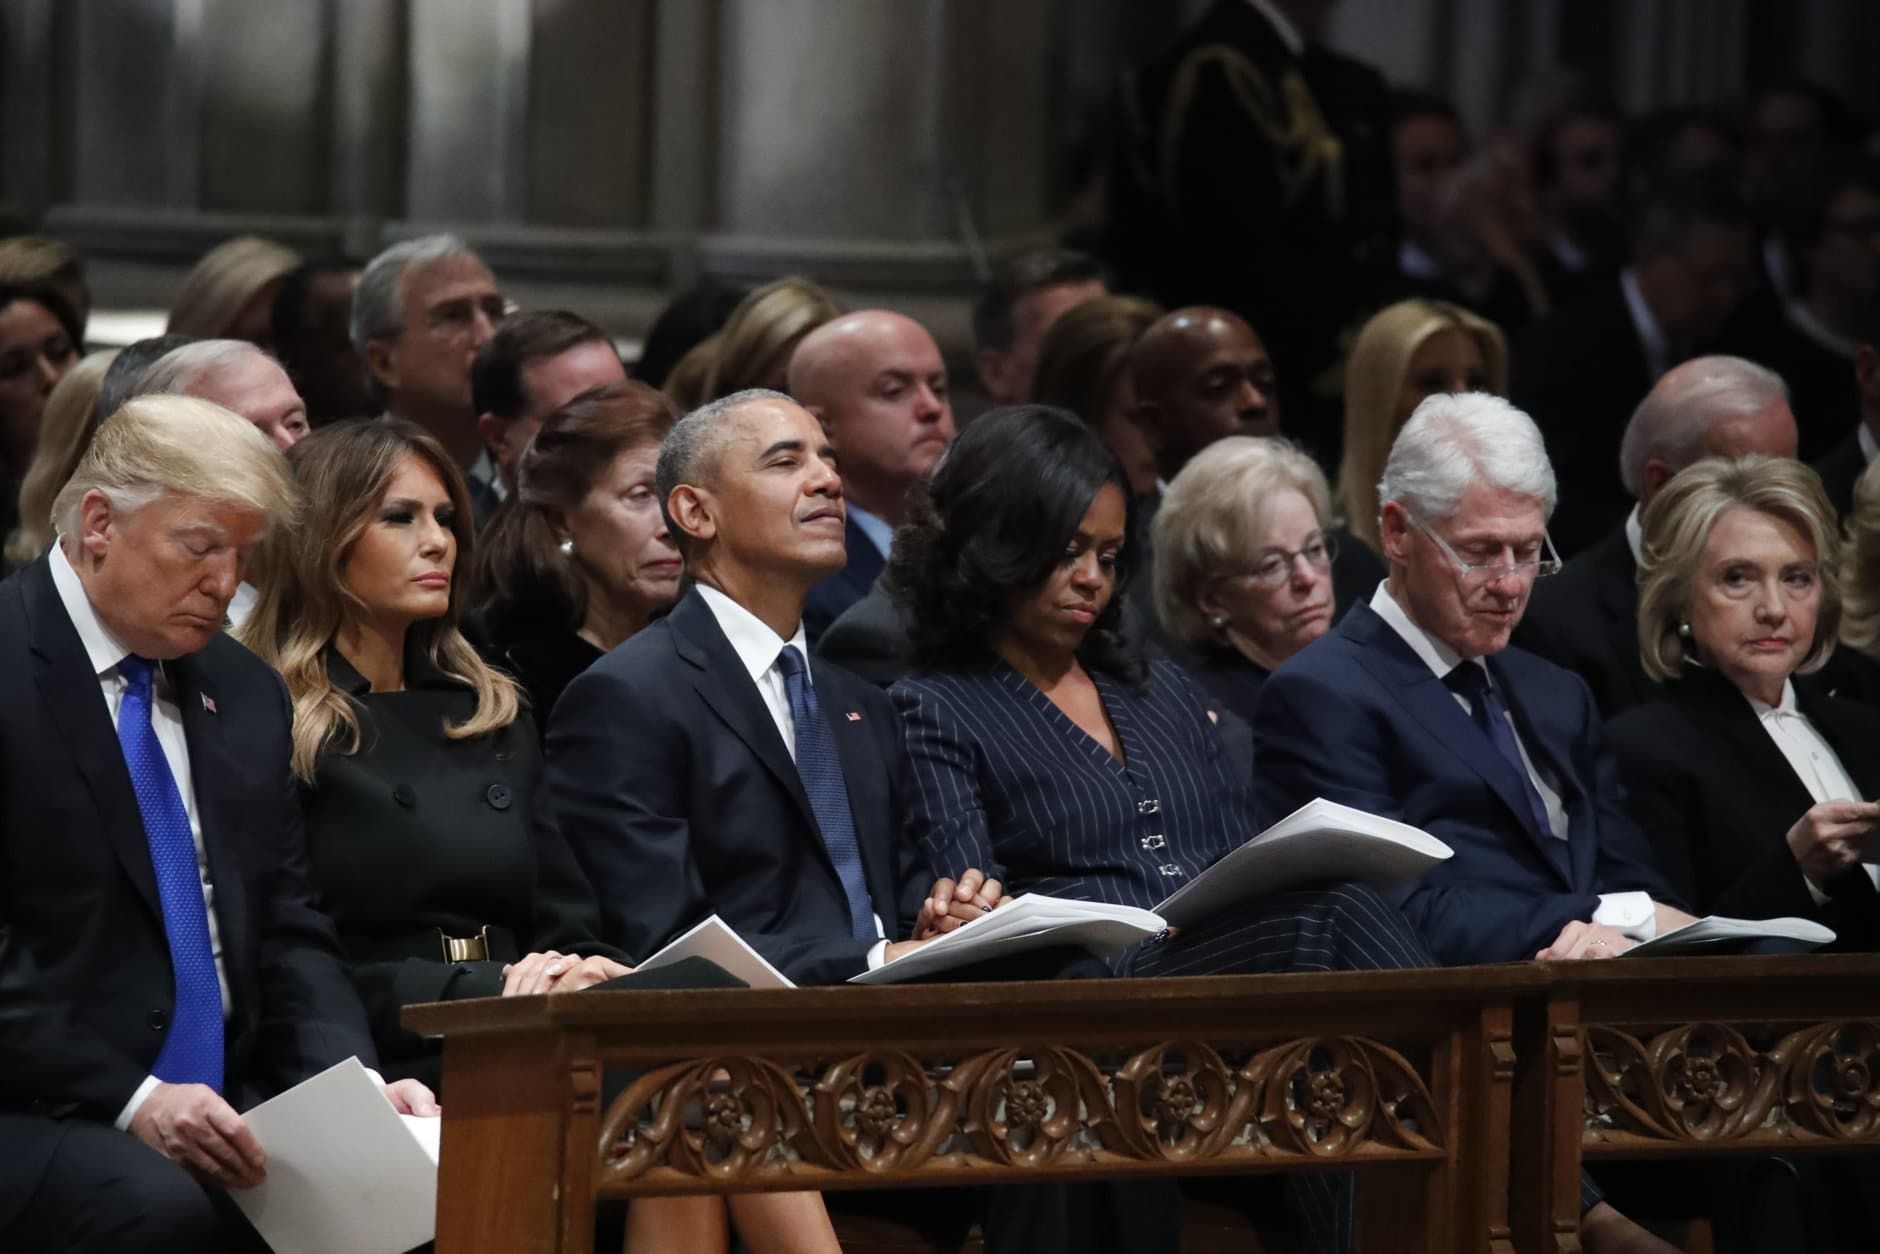 WASHINGTON, DC - DECEMBER 05: (AFP OUT) From left, President Donald Trump, first lady Melania Trump, former President Barack Obama, former first lady Michelle Obama, former President Bill Clinton and former Secretary of State Hillary Clinton listen during a state funeral for former U.S. President George H. W. Bush at the Washington National Cathedral on December 5, 2018 in Washington, DC. President Bush will be buried at his final resting place at the George H.W. Bush Presidential Library at Texas A&M University in College Station, Texas. A WWII combat veteran, Bush served as a member of Congress from Texas, ambassador to the United Nations, director of the CIA, vice president and 41st president of the United States. (Photo by Alex Brandon - Pool/Getty Images)